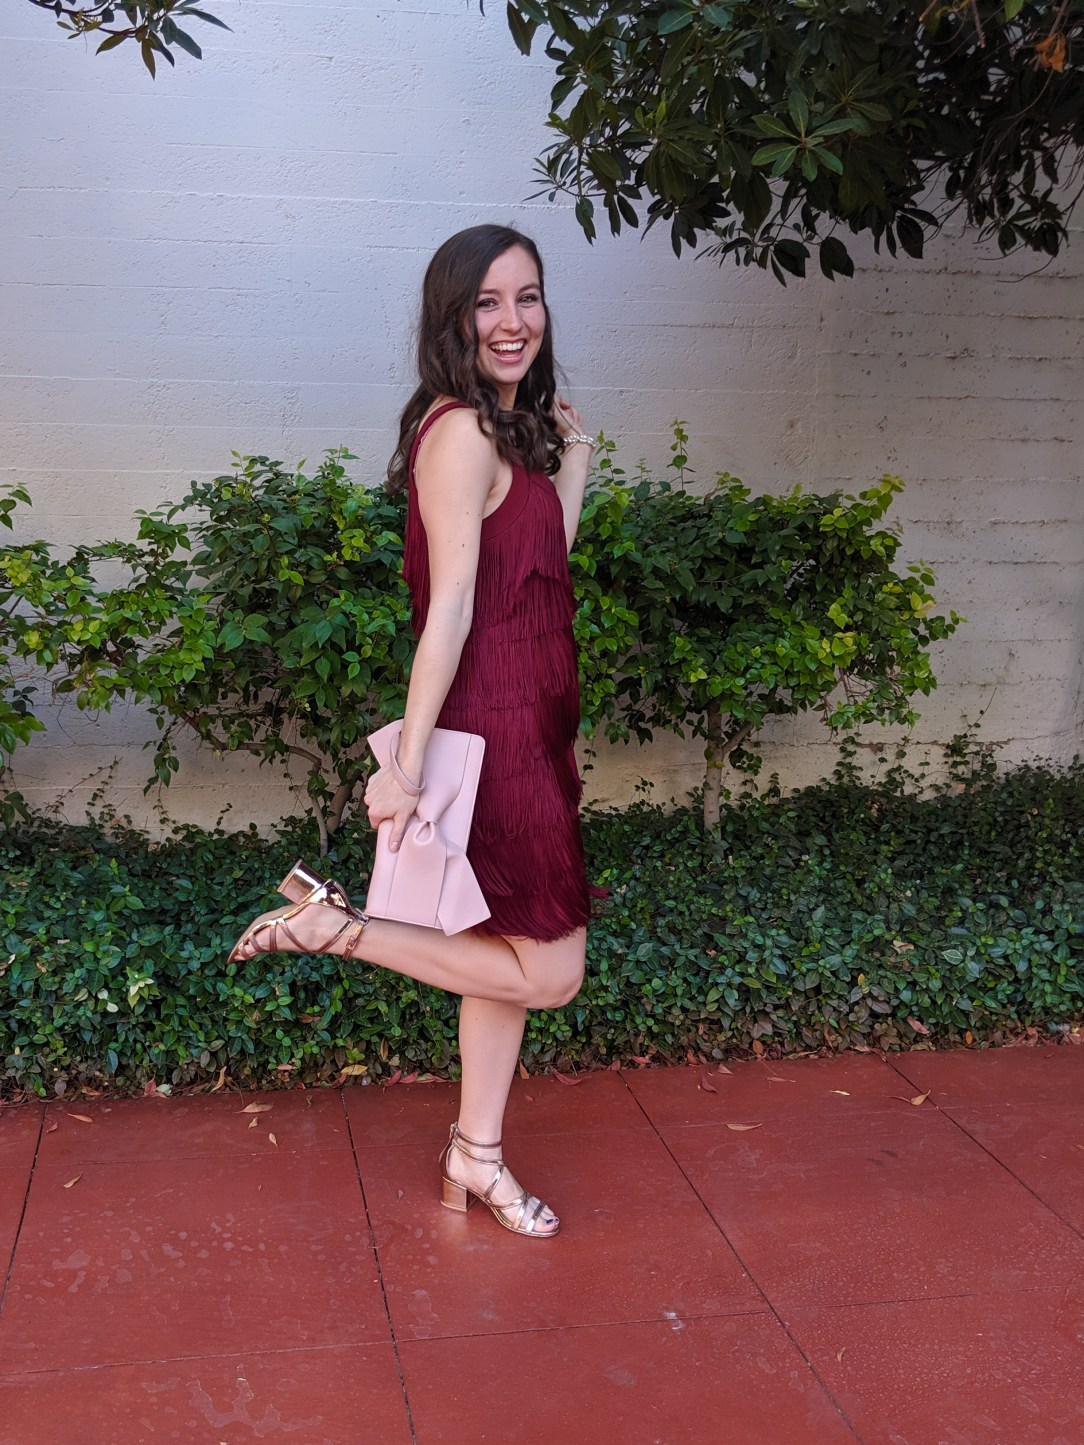 rose gold accessories, blush clutch, crimson dress